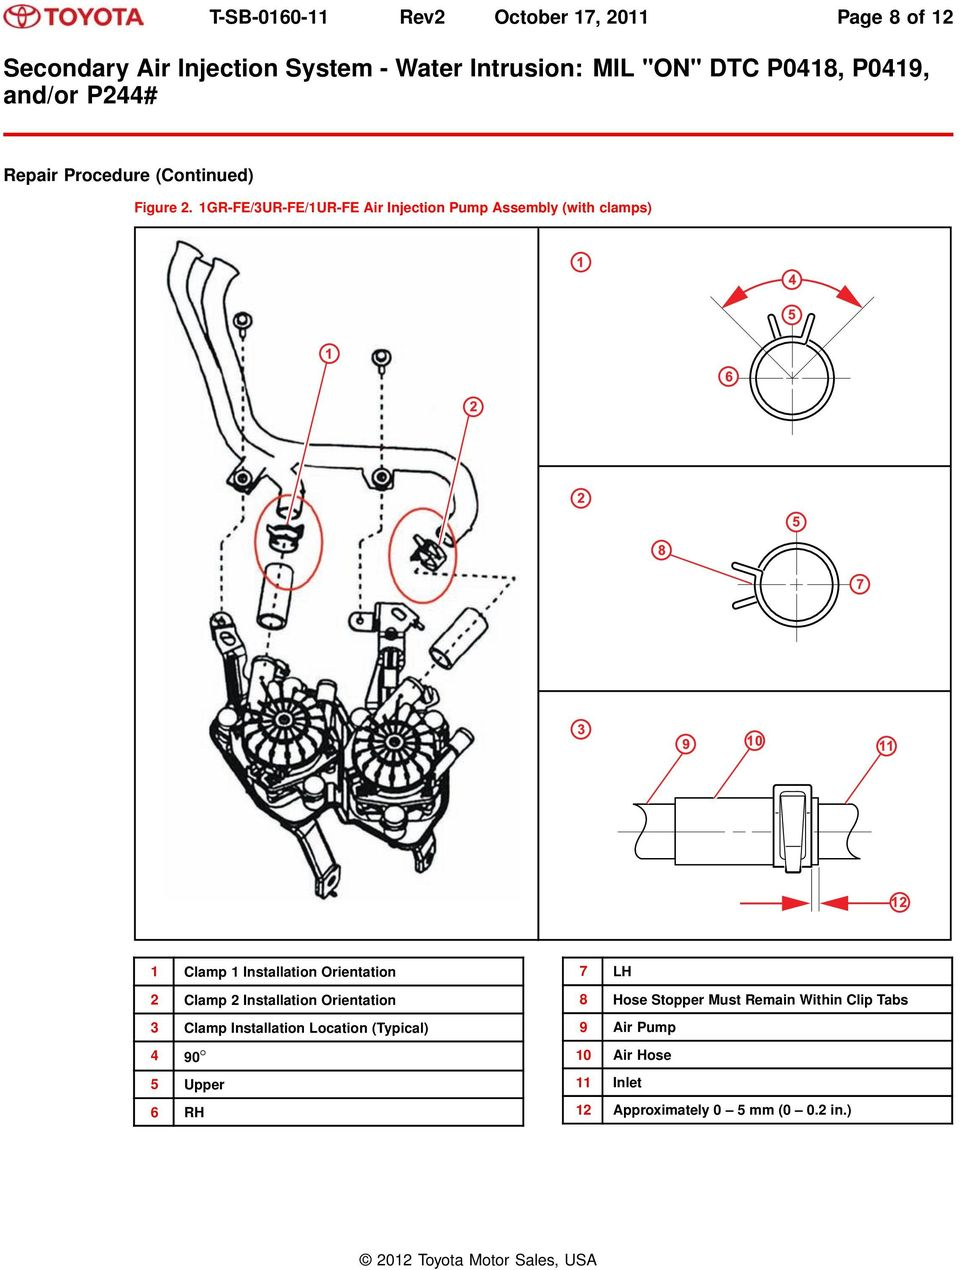 p0412 secondary air injection system switching valve a circuit